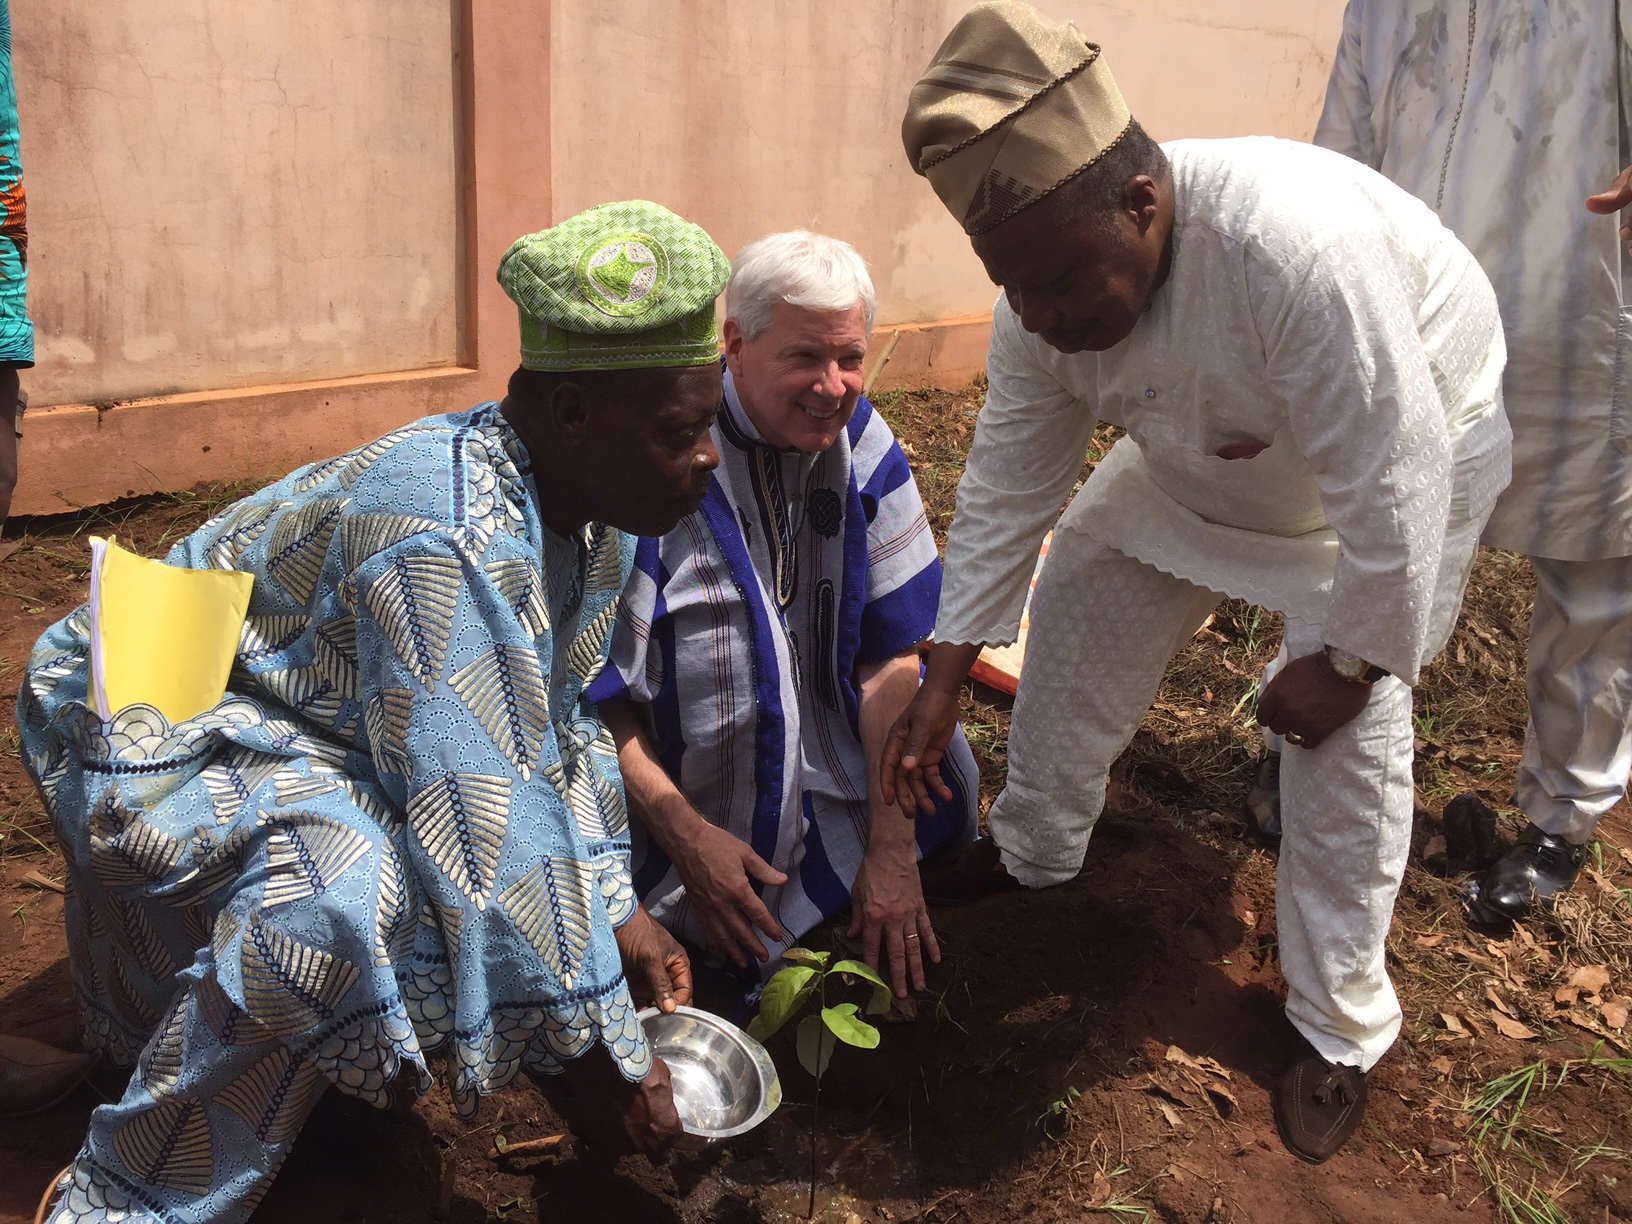 IFDC President and CEO J. Scott Angle and the Honorable Pierre Adechi, Mayor of the city, plant a tree outside the town hall.